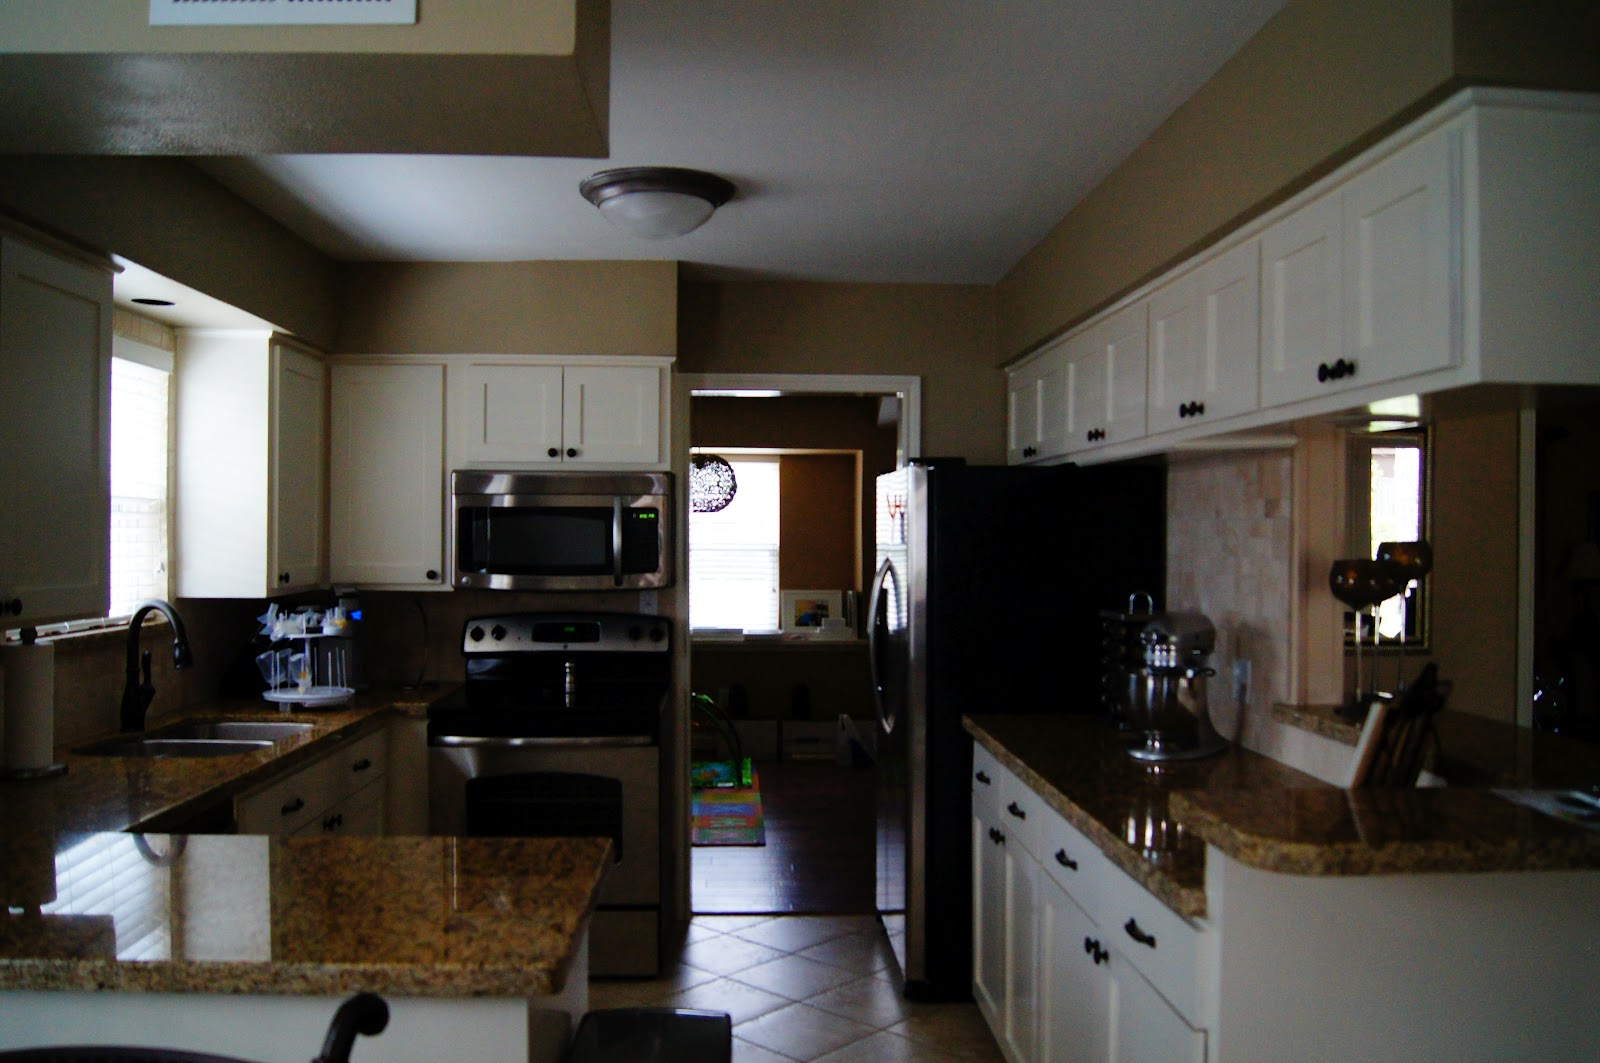 The Sunny Side of Life Kitchen Remodel